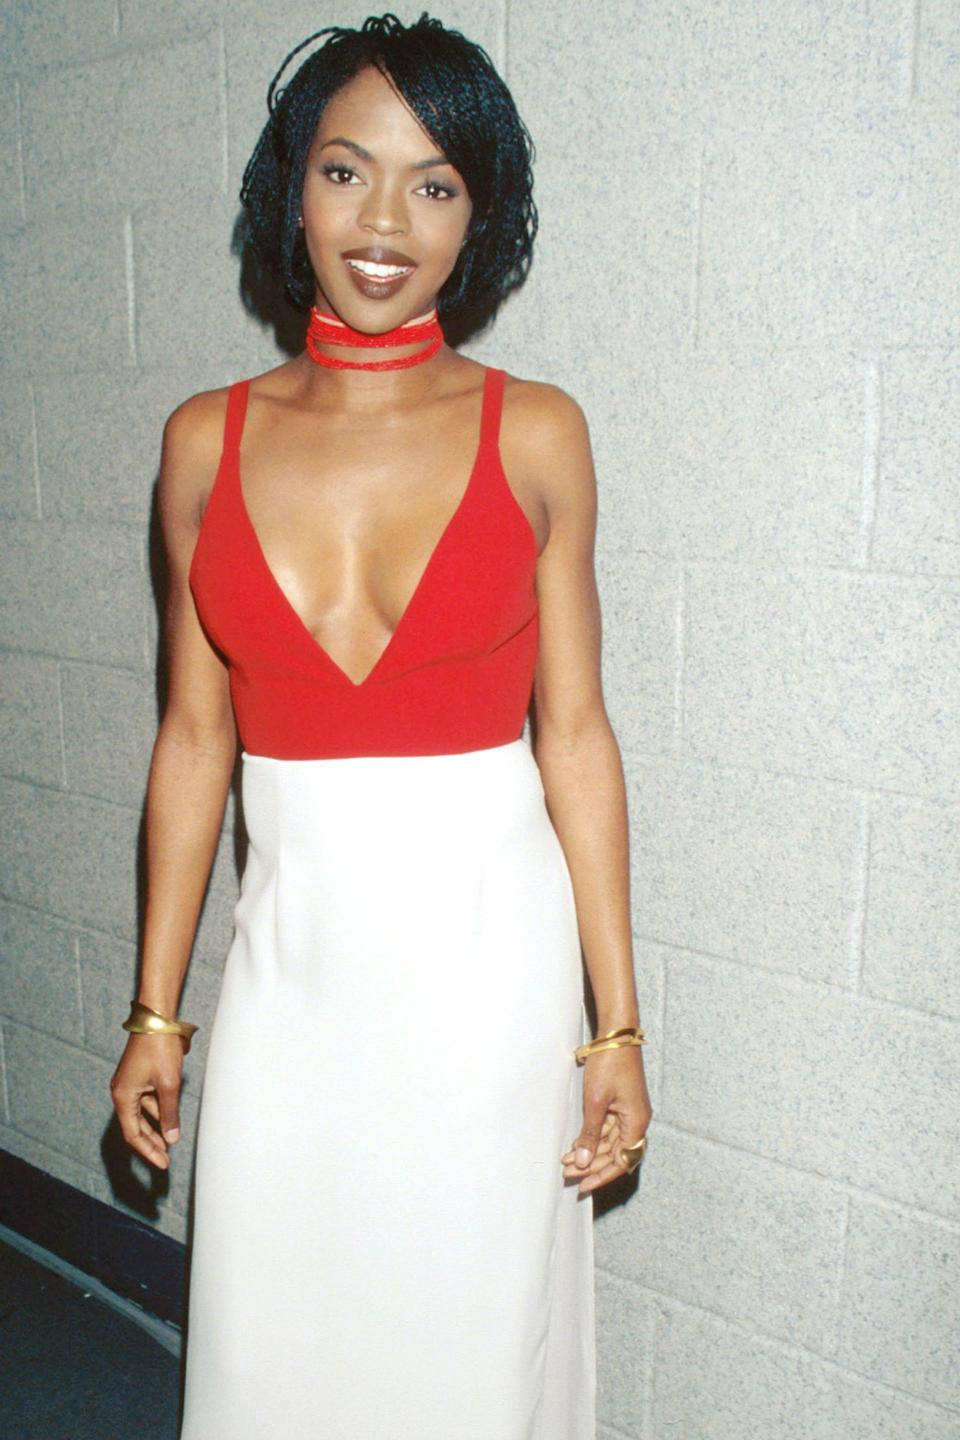 """<h2>Lauryn Hill, 1997</h2><br>Laid-back and sophisticated, this red-and-white dress was the winner at the 1997 Grammys red carpet. <span class=""""copyright"""">Photo: Kevin Mazur/WireImage.</span>"""